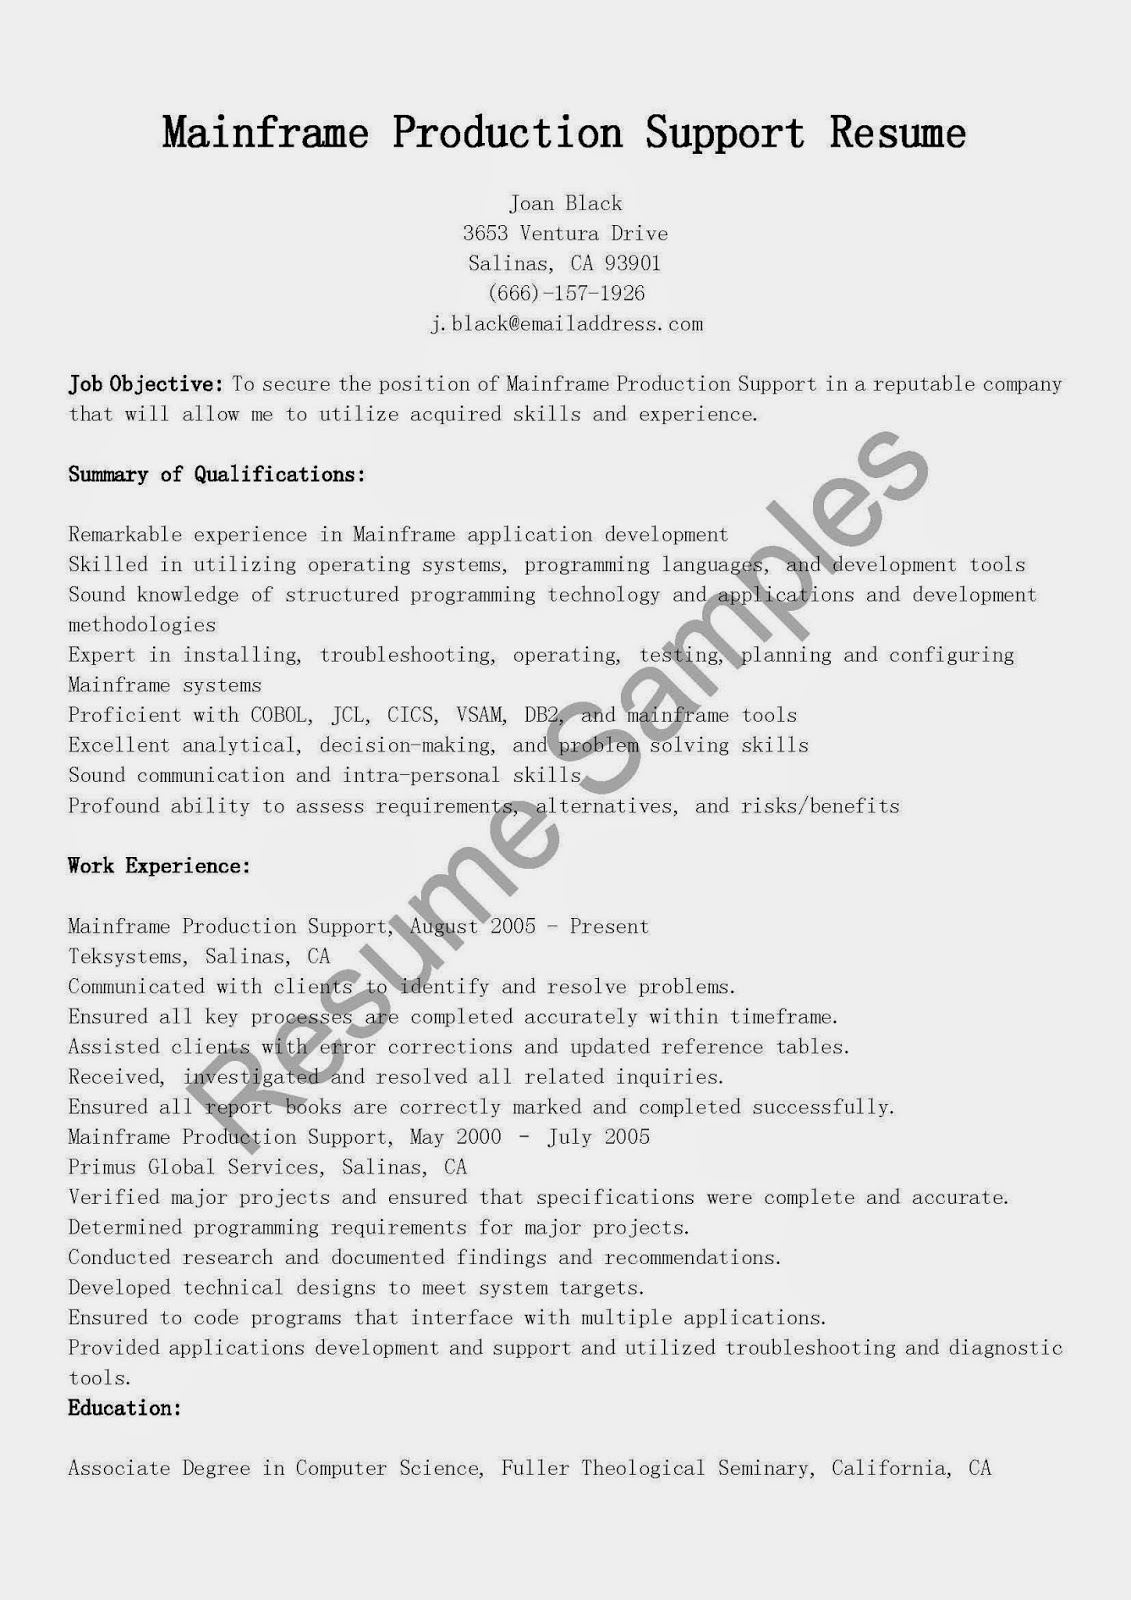 resume sles mainframe production support resume sle